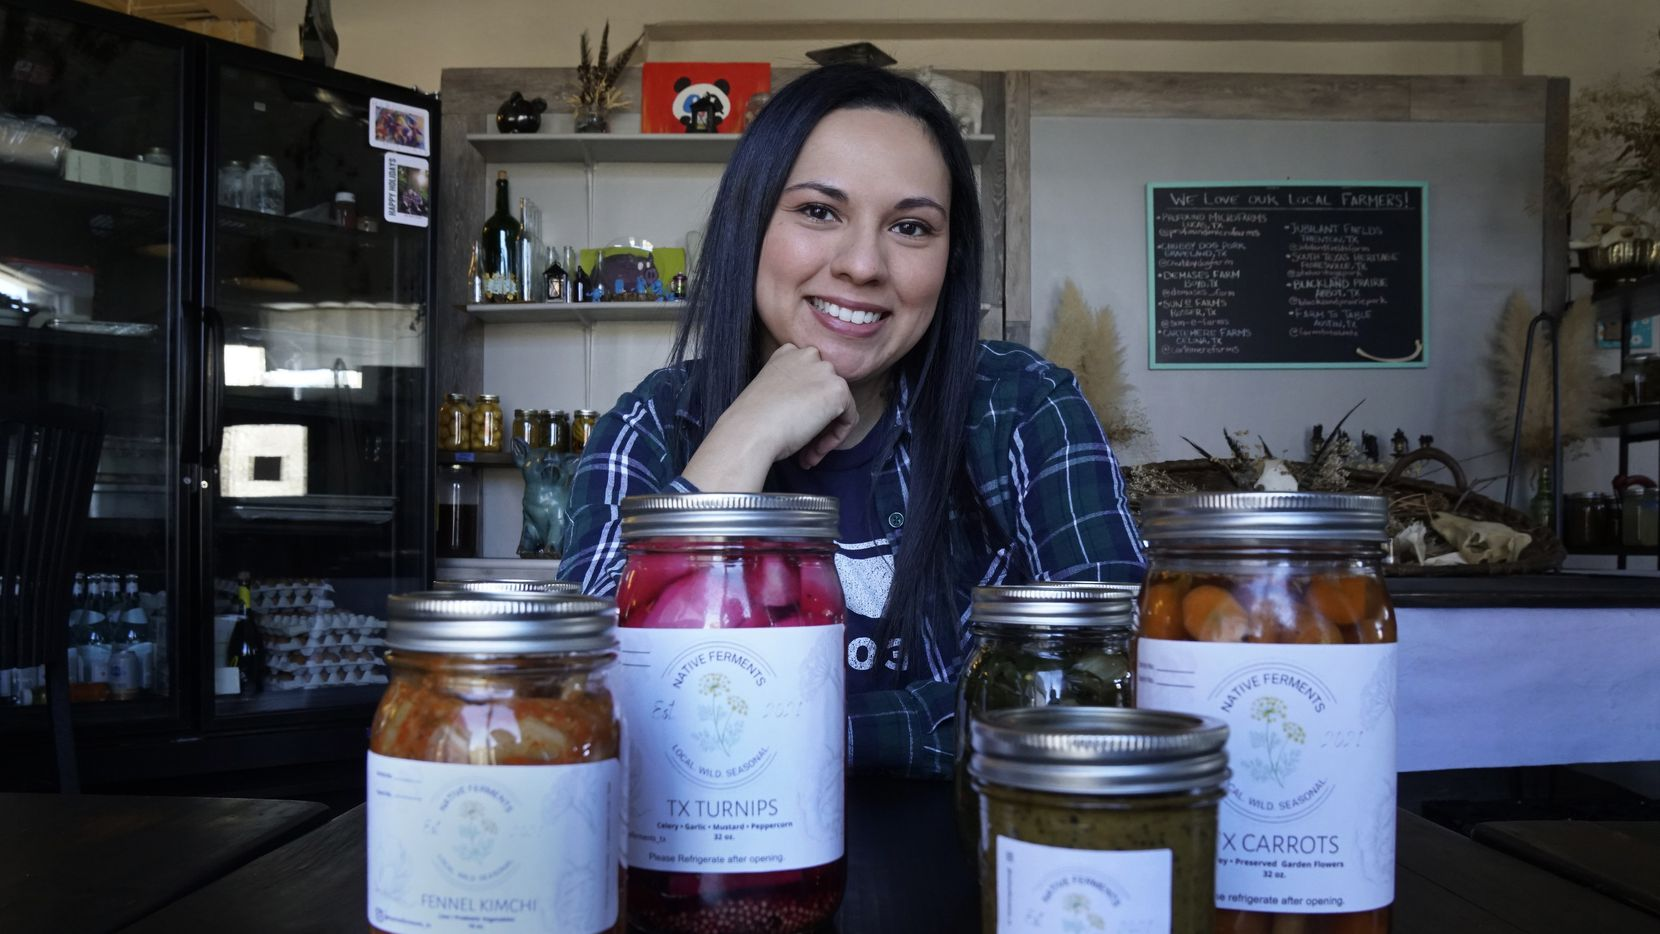 Jessica Alonzo with her Native Ferments at Petra and the Beast in Dallas